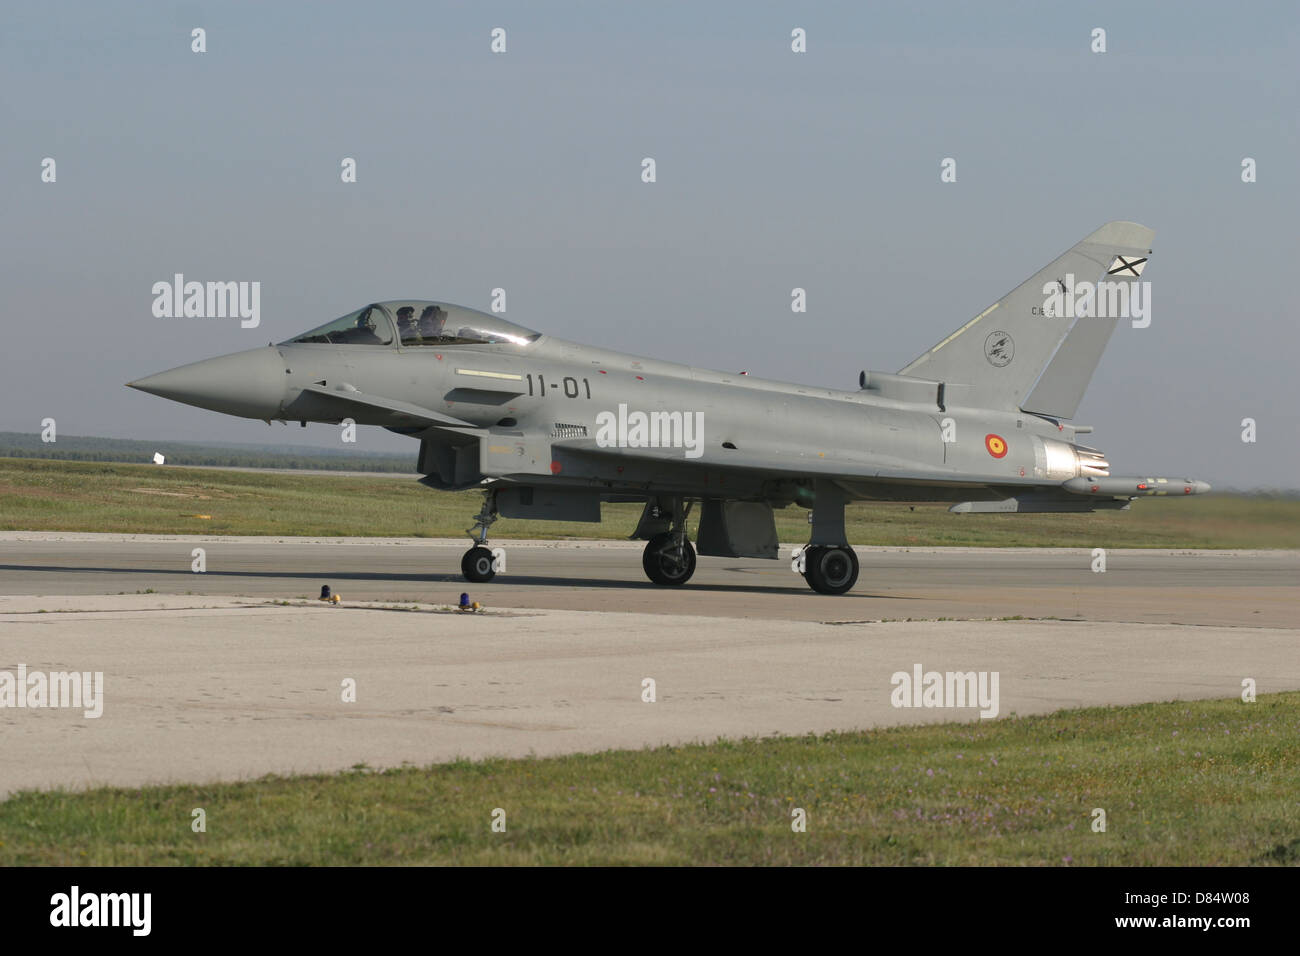 A Eurofighter Typhoon of the Spanish Air Force taxiing to the runway at Moron, Spain. - Stock Image